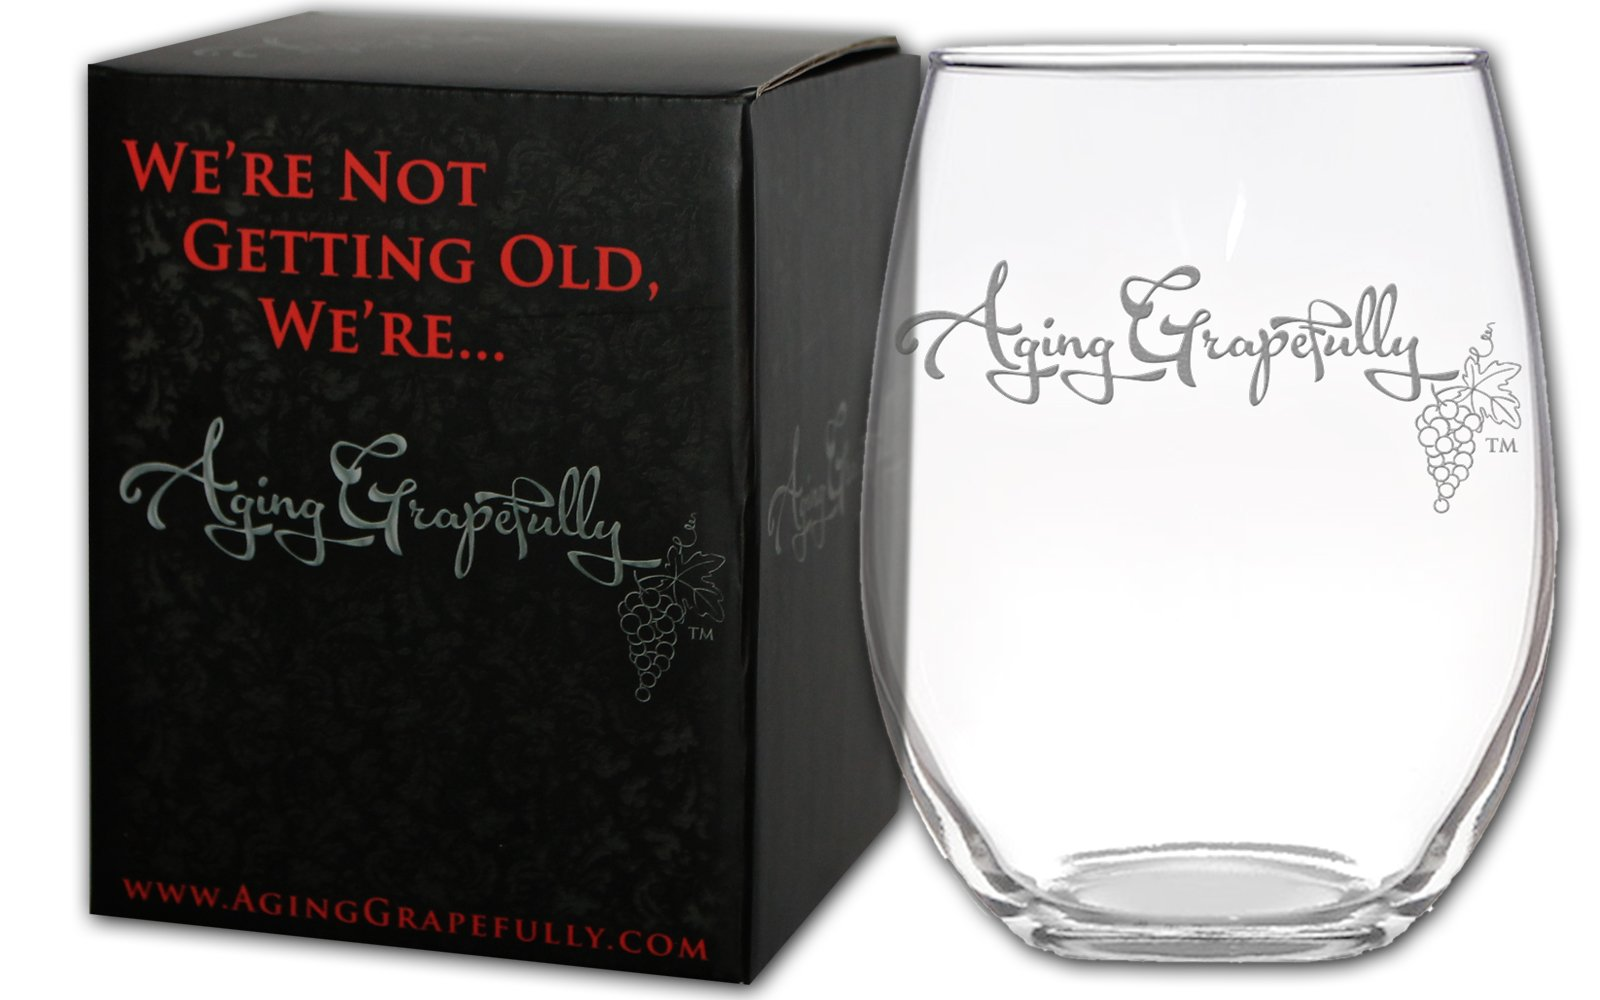 Aging Grapefully 21oz Etched Stemless Wine Glass (Aging Grapefully - Logo Only)